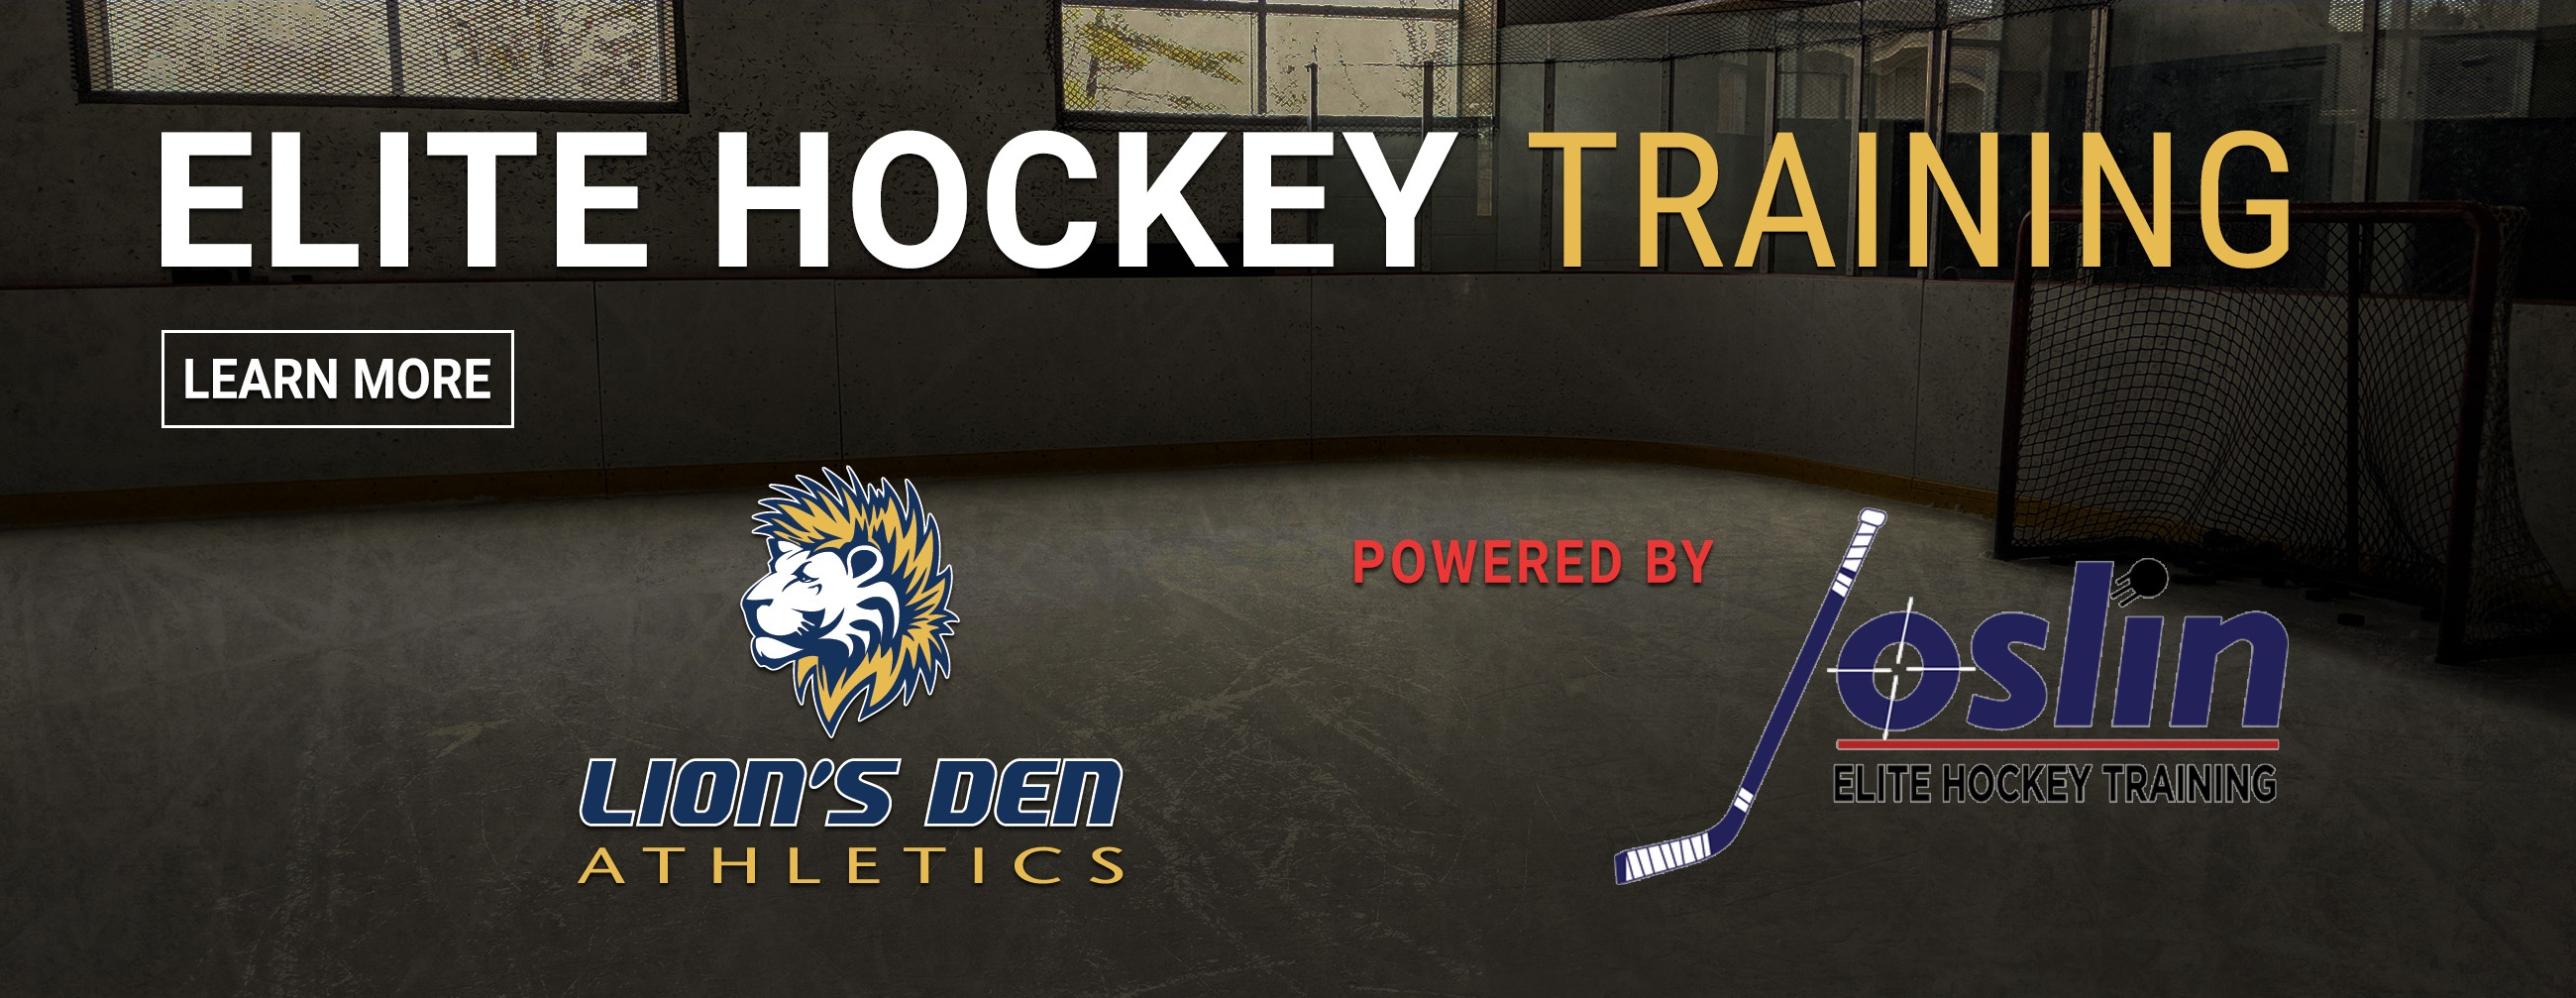 ELITE HOCKEY TRAINING POWERED BY JOSLIN